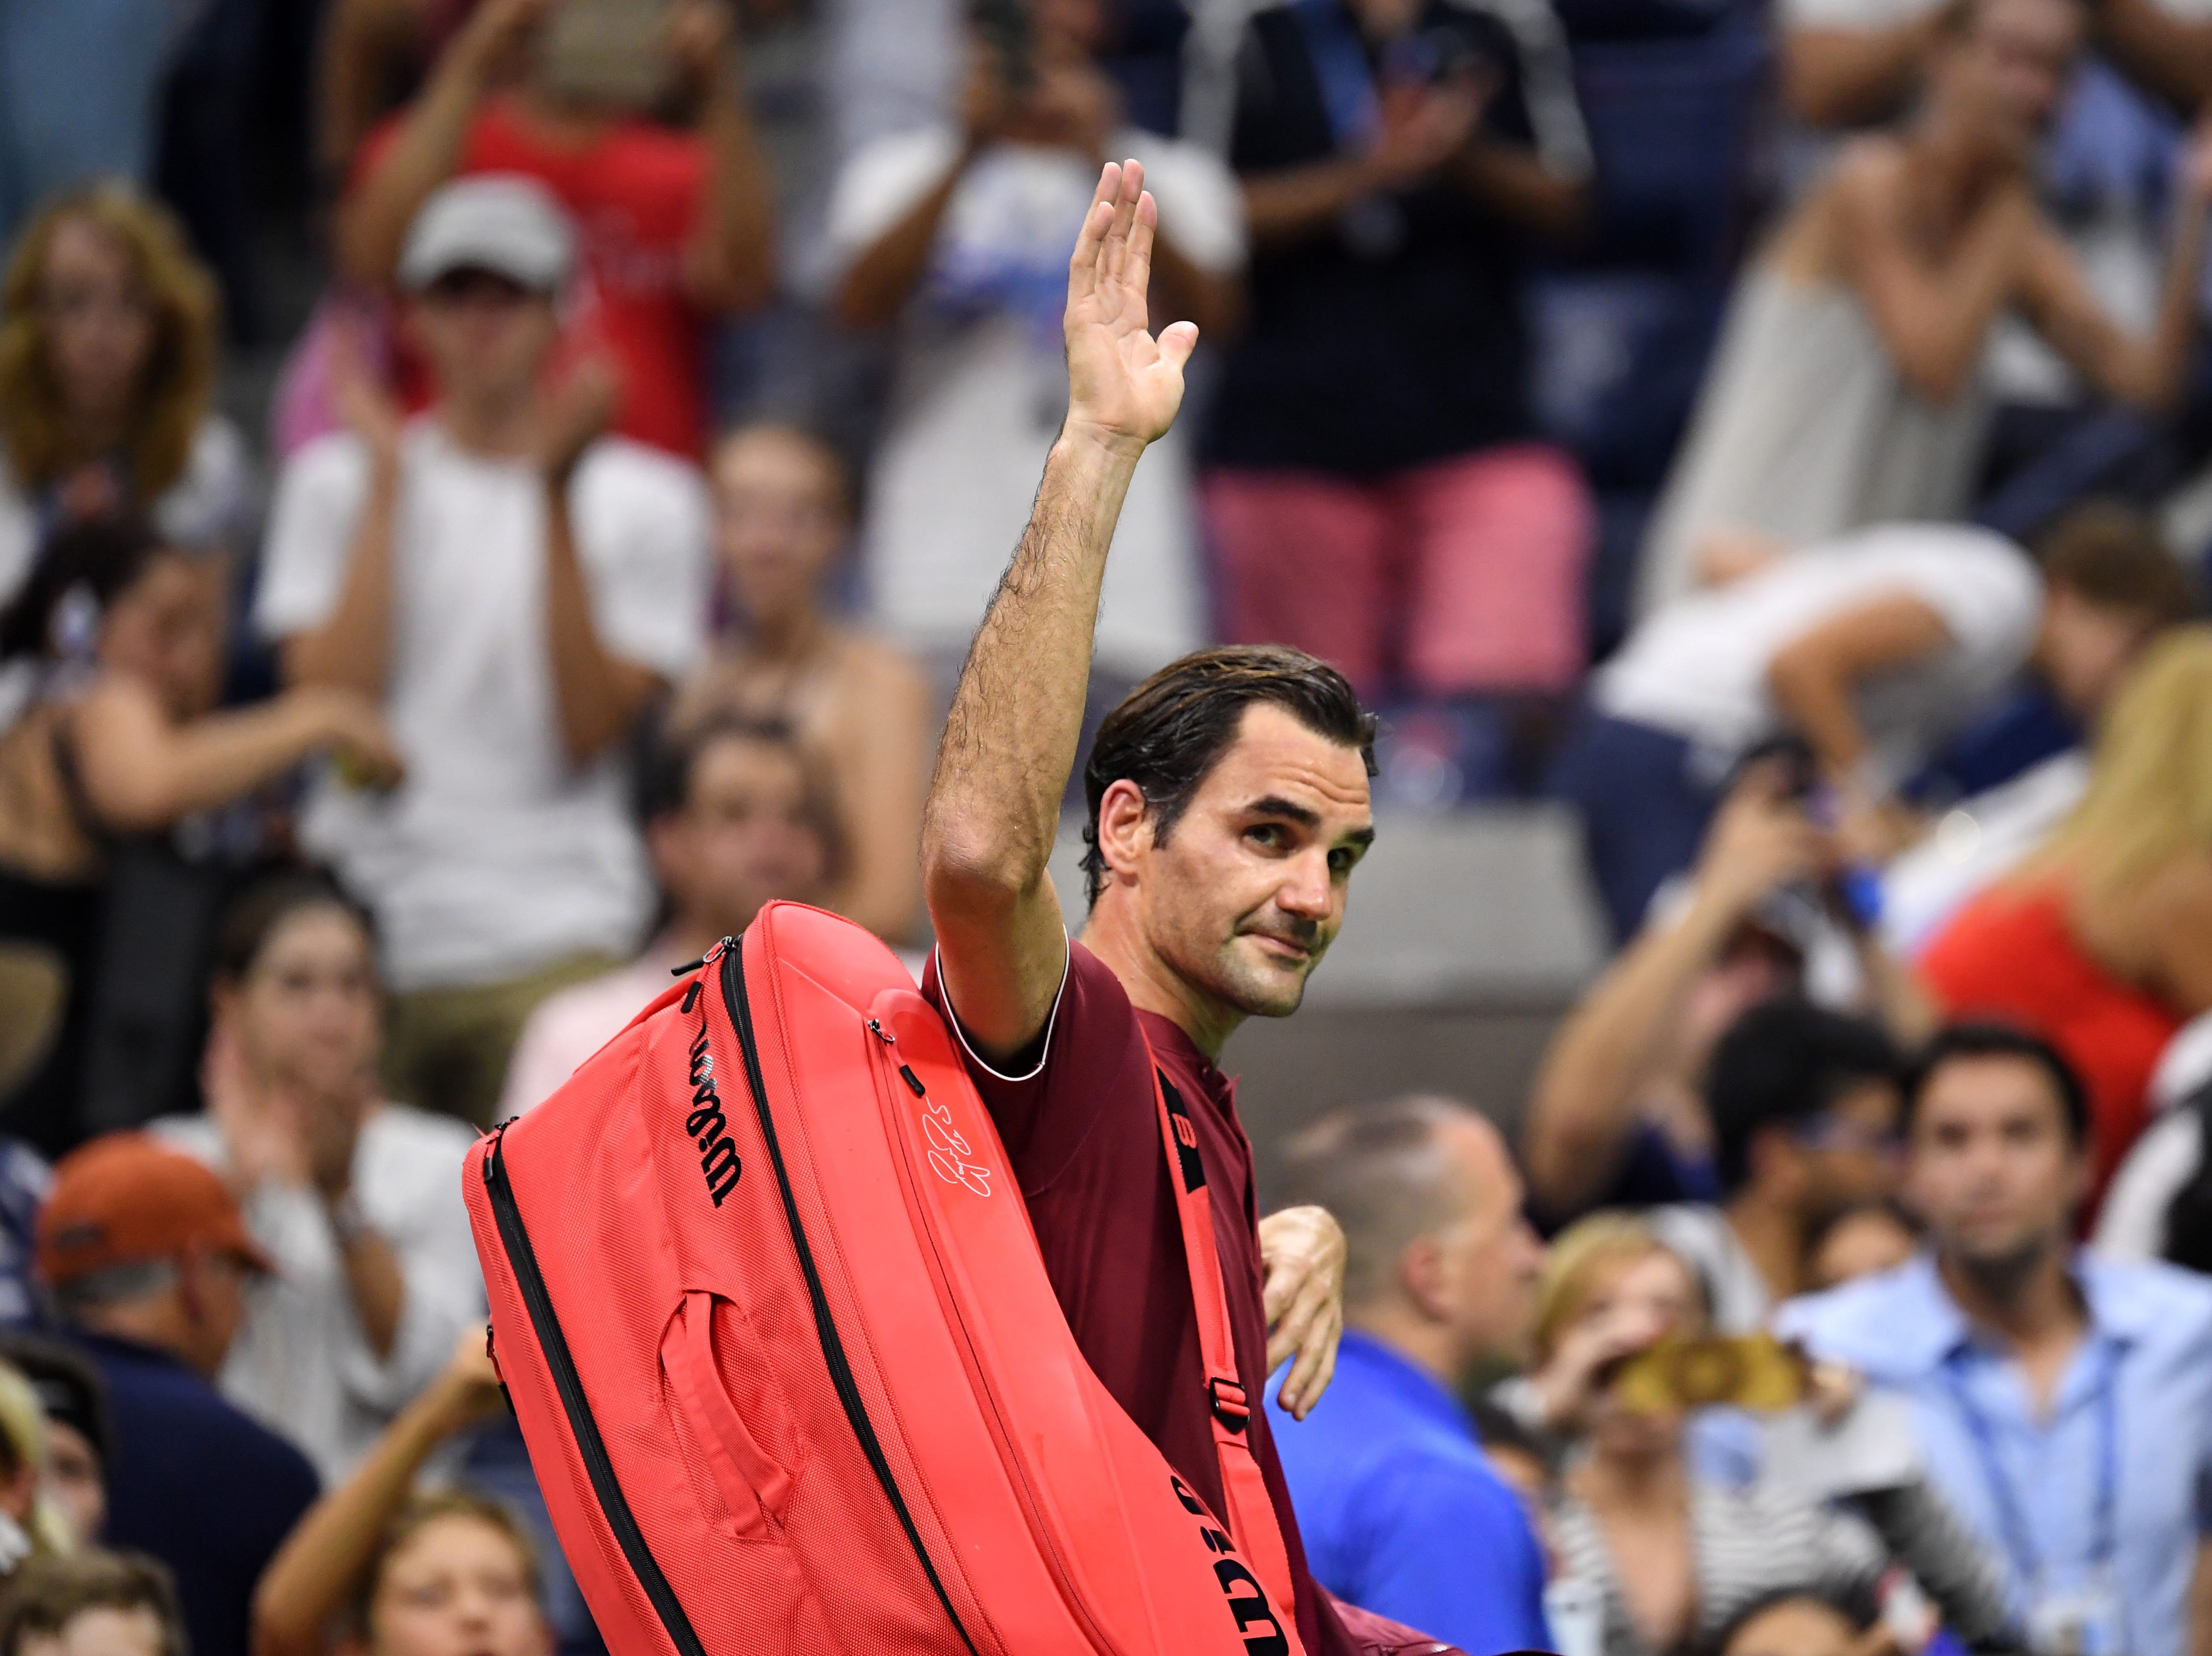 Roger Federer walks off the court after his loss to John Millman in the fourth round.